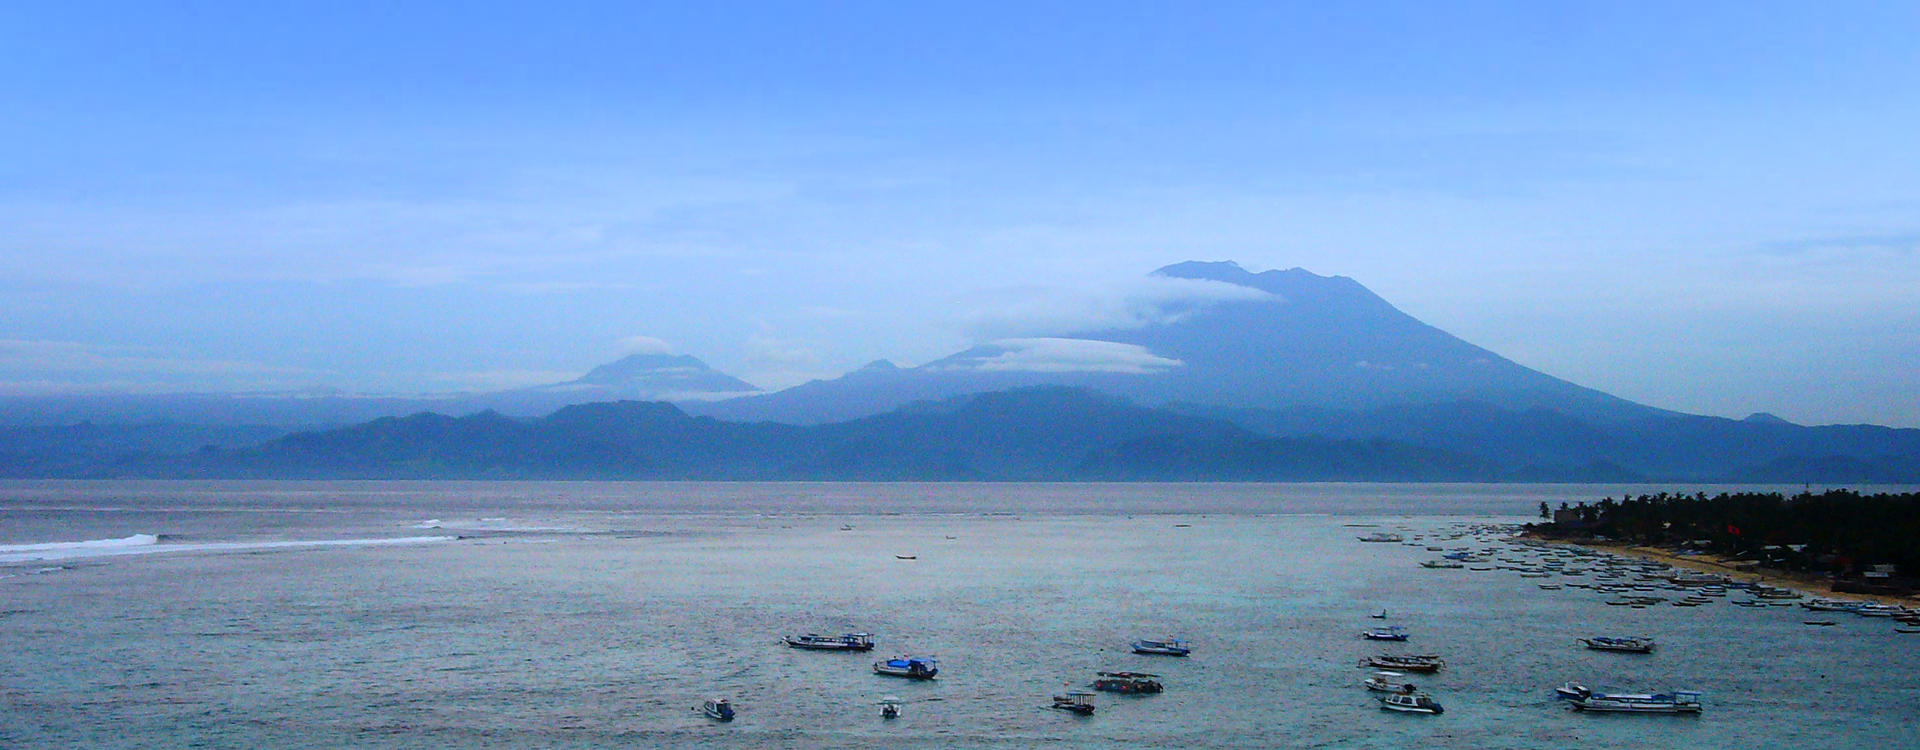 Mount Agung From Nusa Lembongan